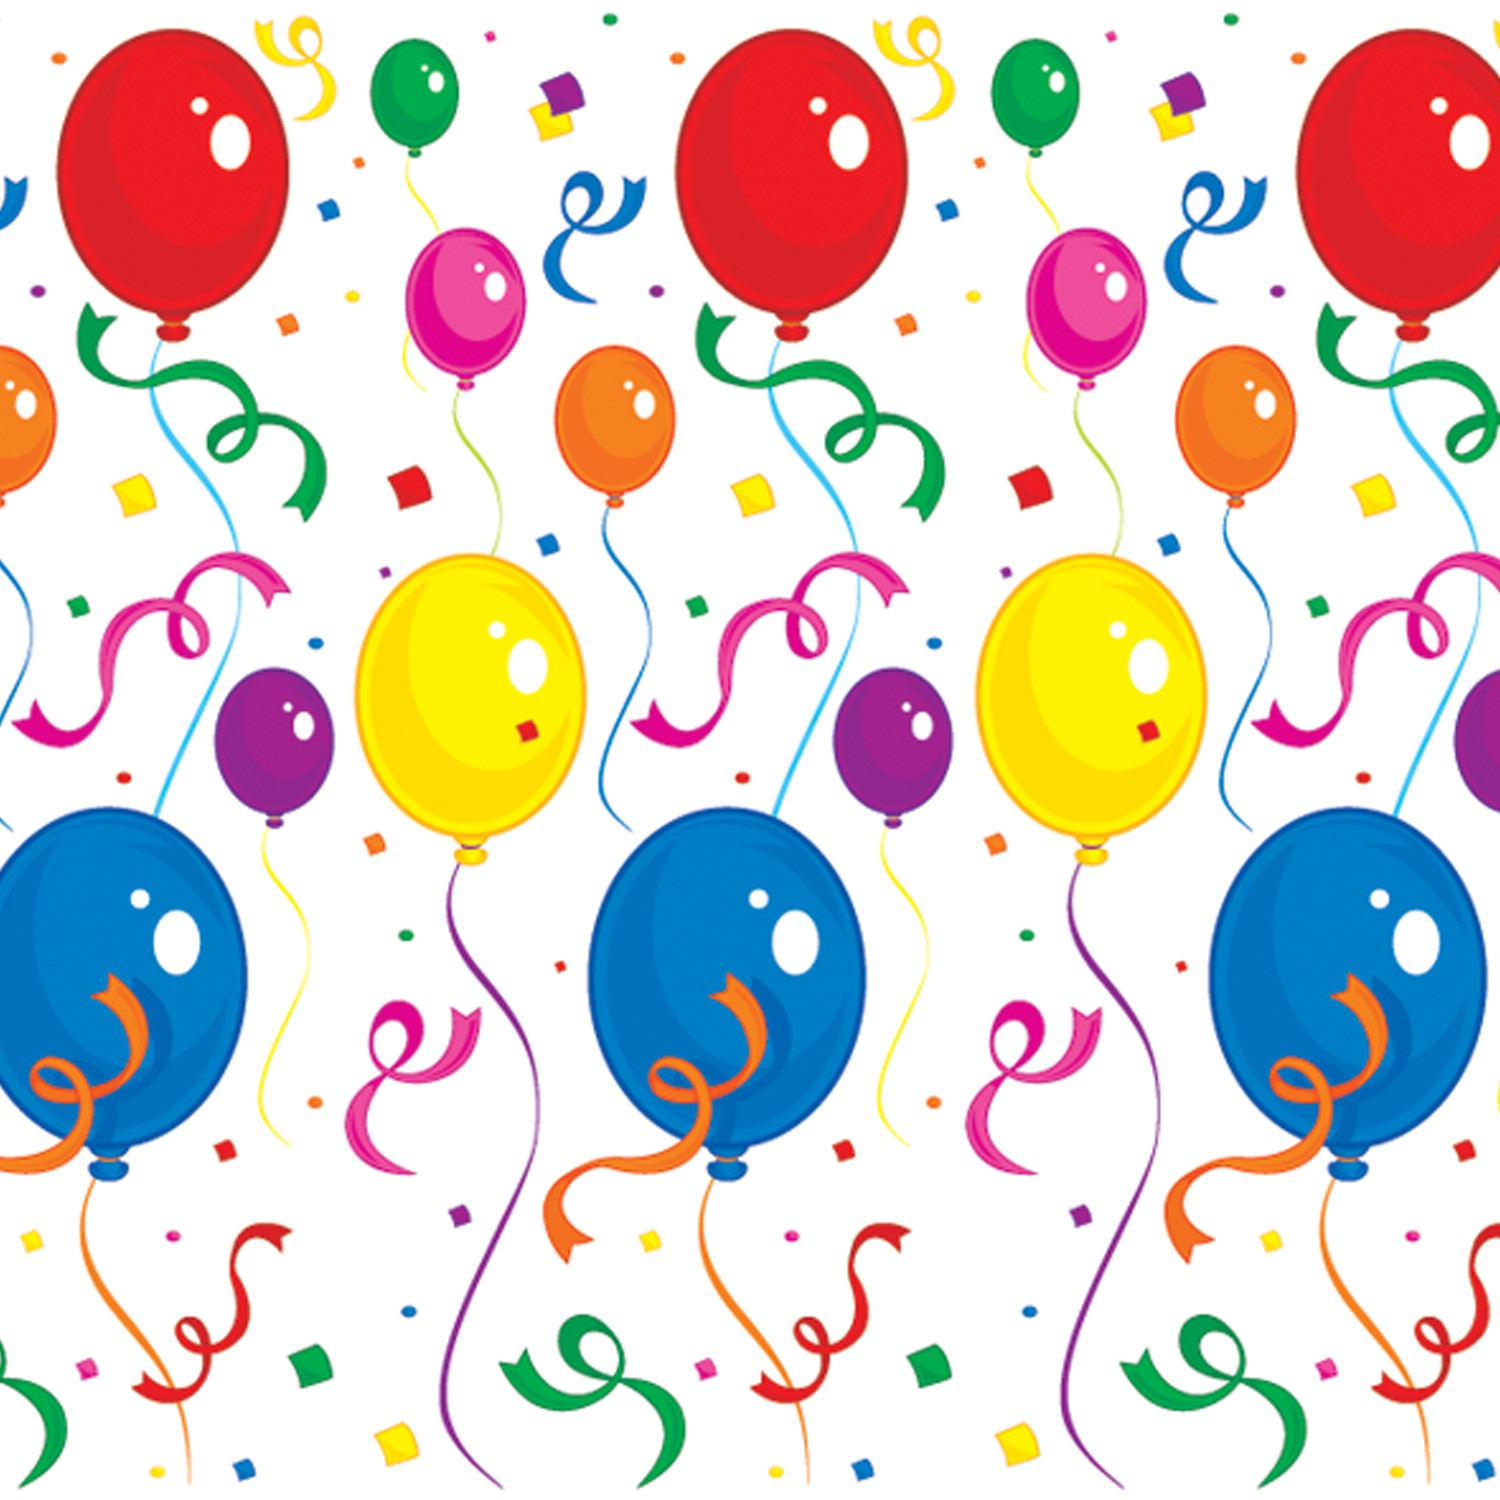 Free Balloons And Confetti Png, Download Free Clip Art, Free Clip.